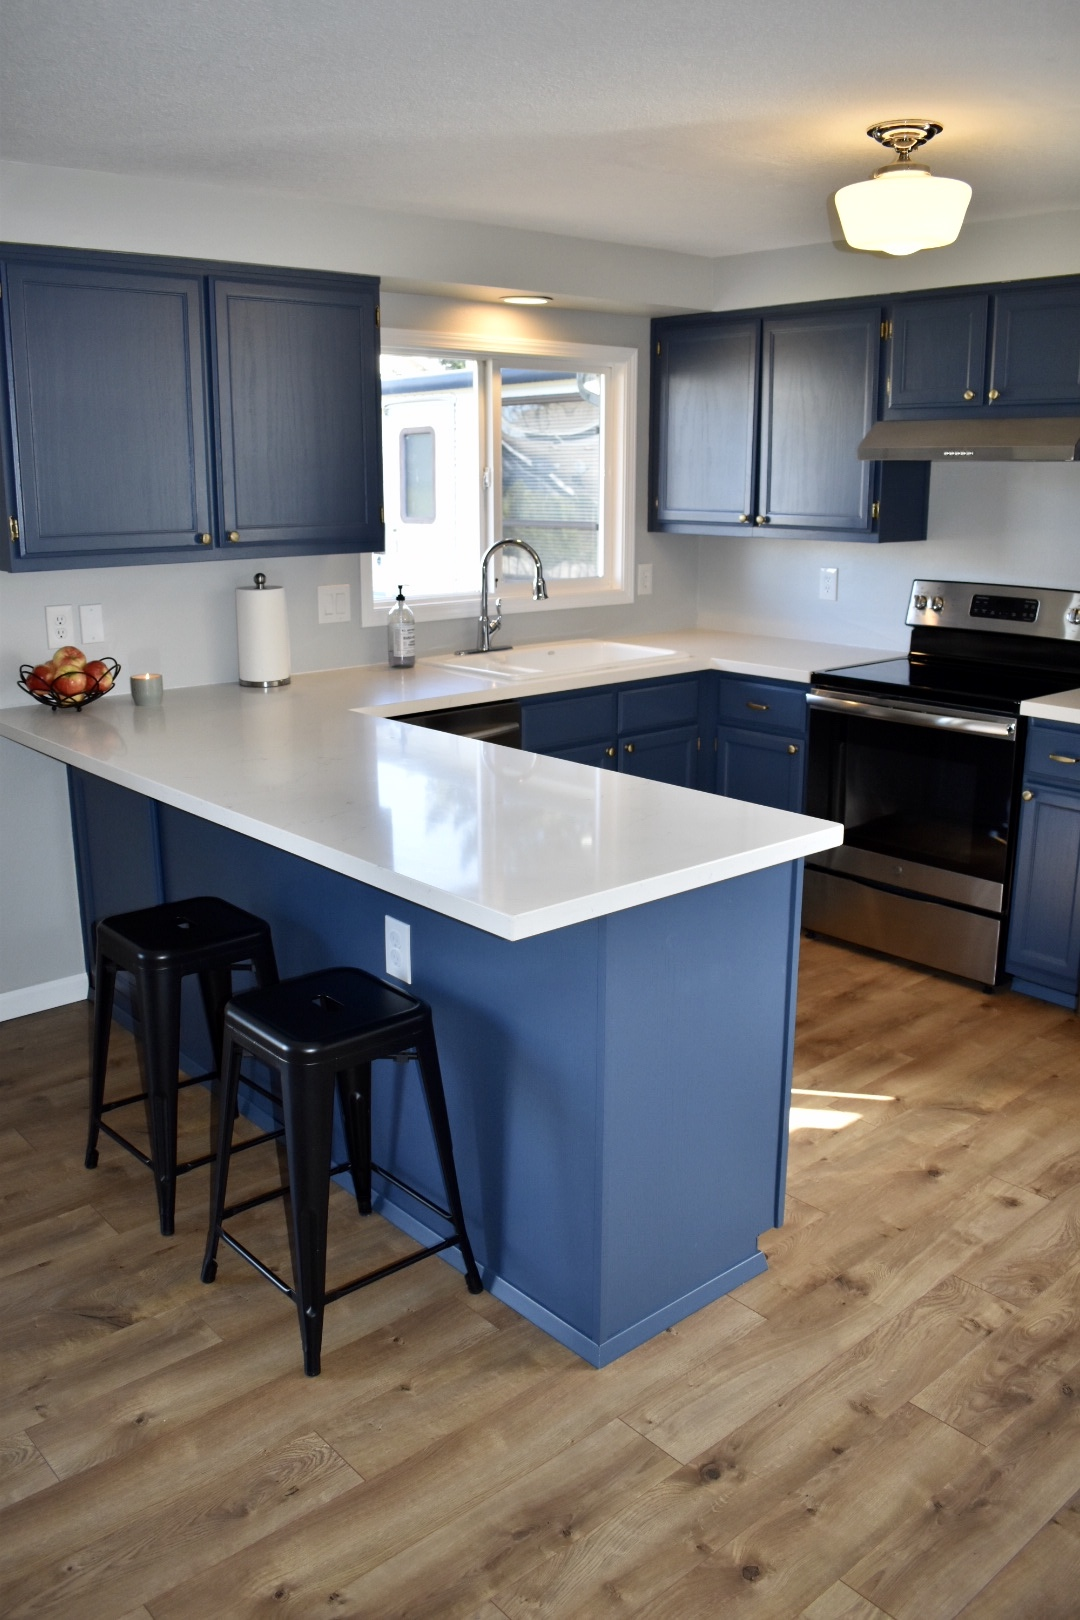 Owner Project Painting Old Kitchen Cabinets 4th Avenue Homes General Contractor